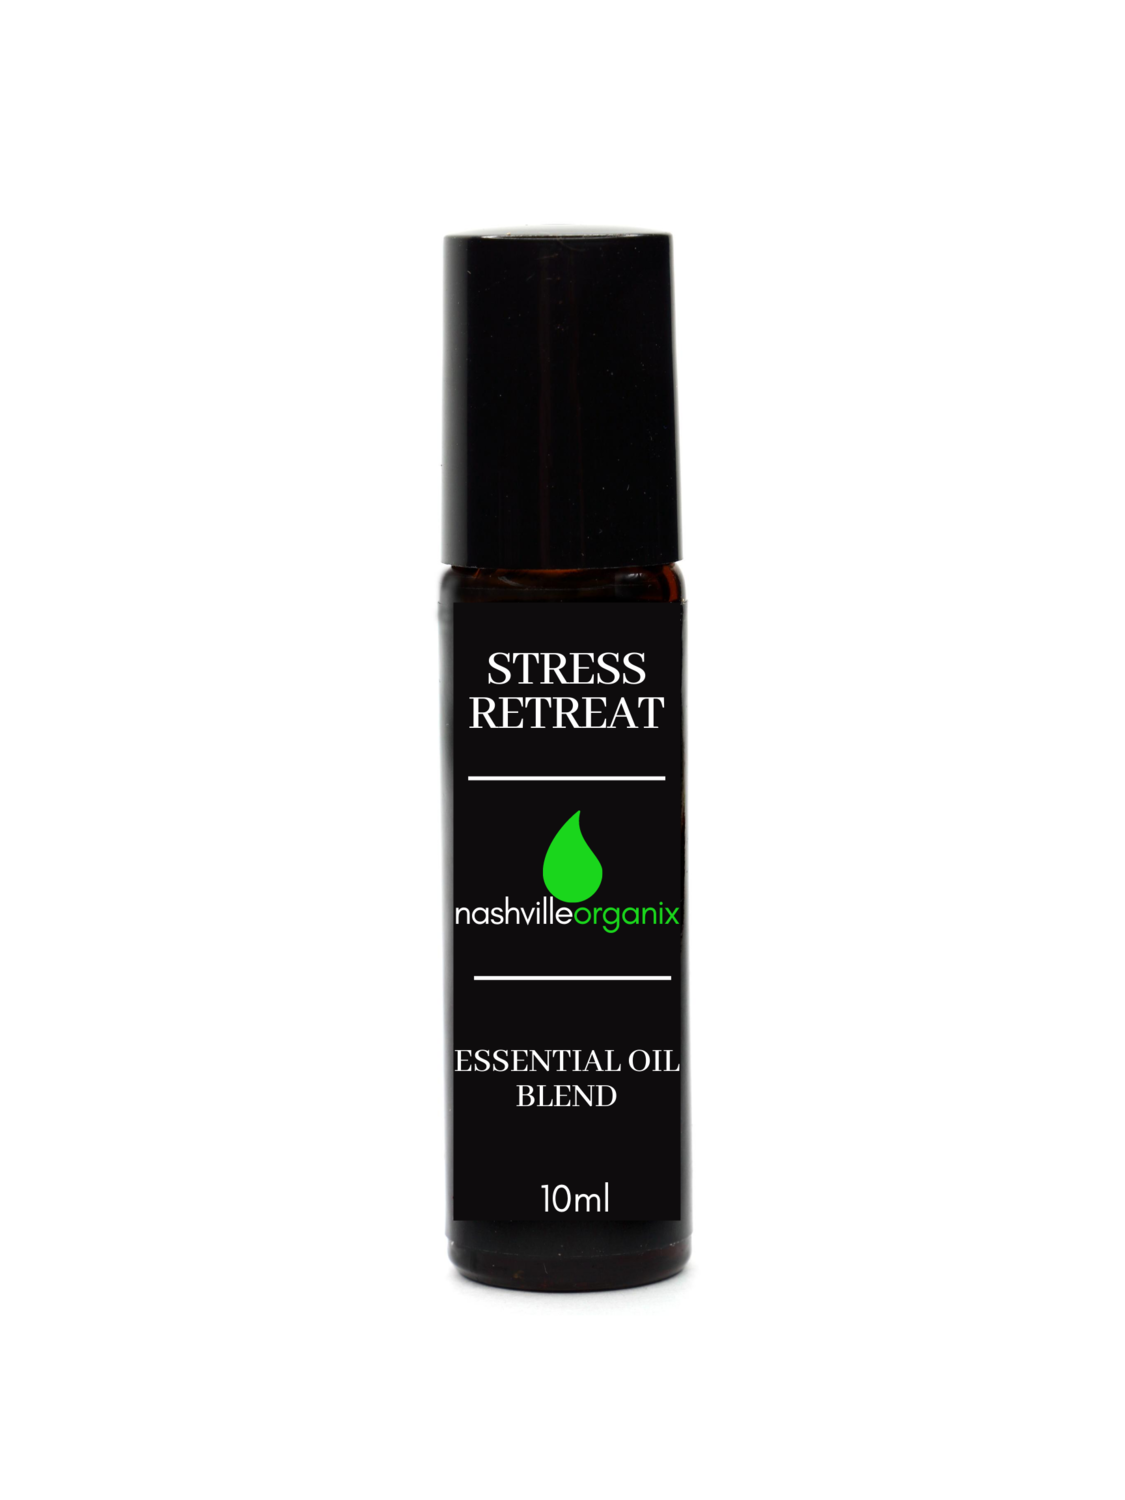 Stress Retreat Blend with Cannabis Oil